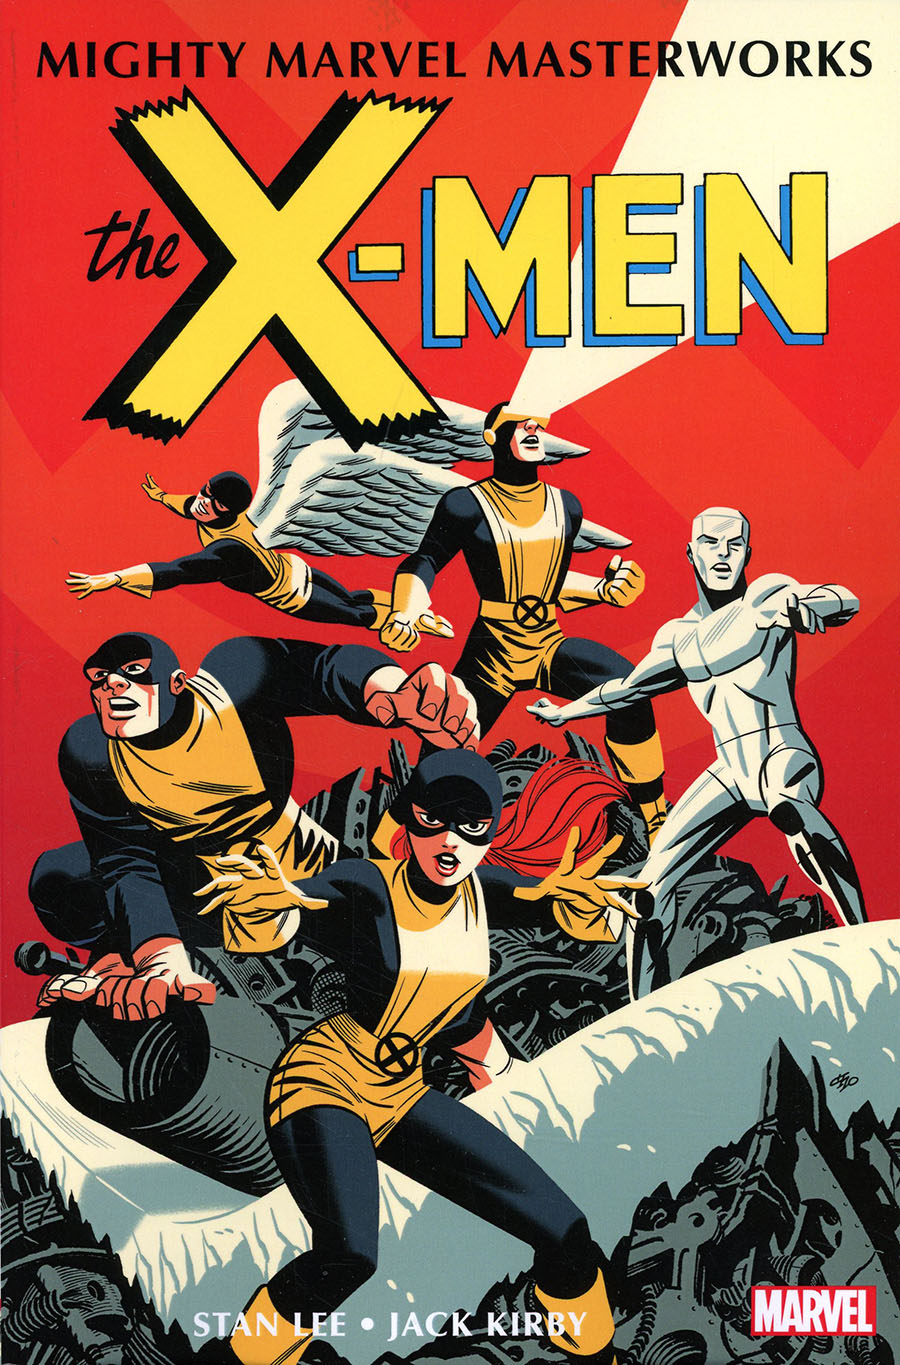 Mighty Marvel Masterworks X-Men Vol 1 Strangest Super Heroes Of All GN Book Market Michael Cho Cover